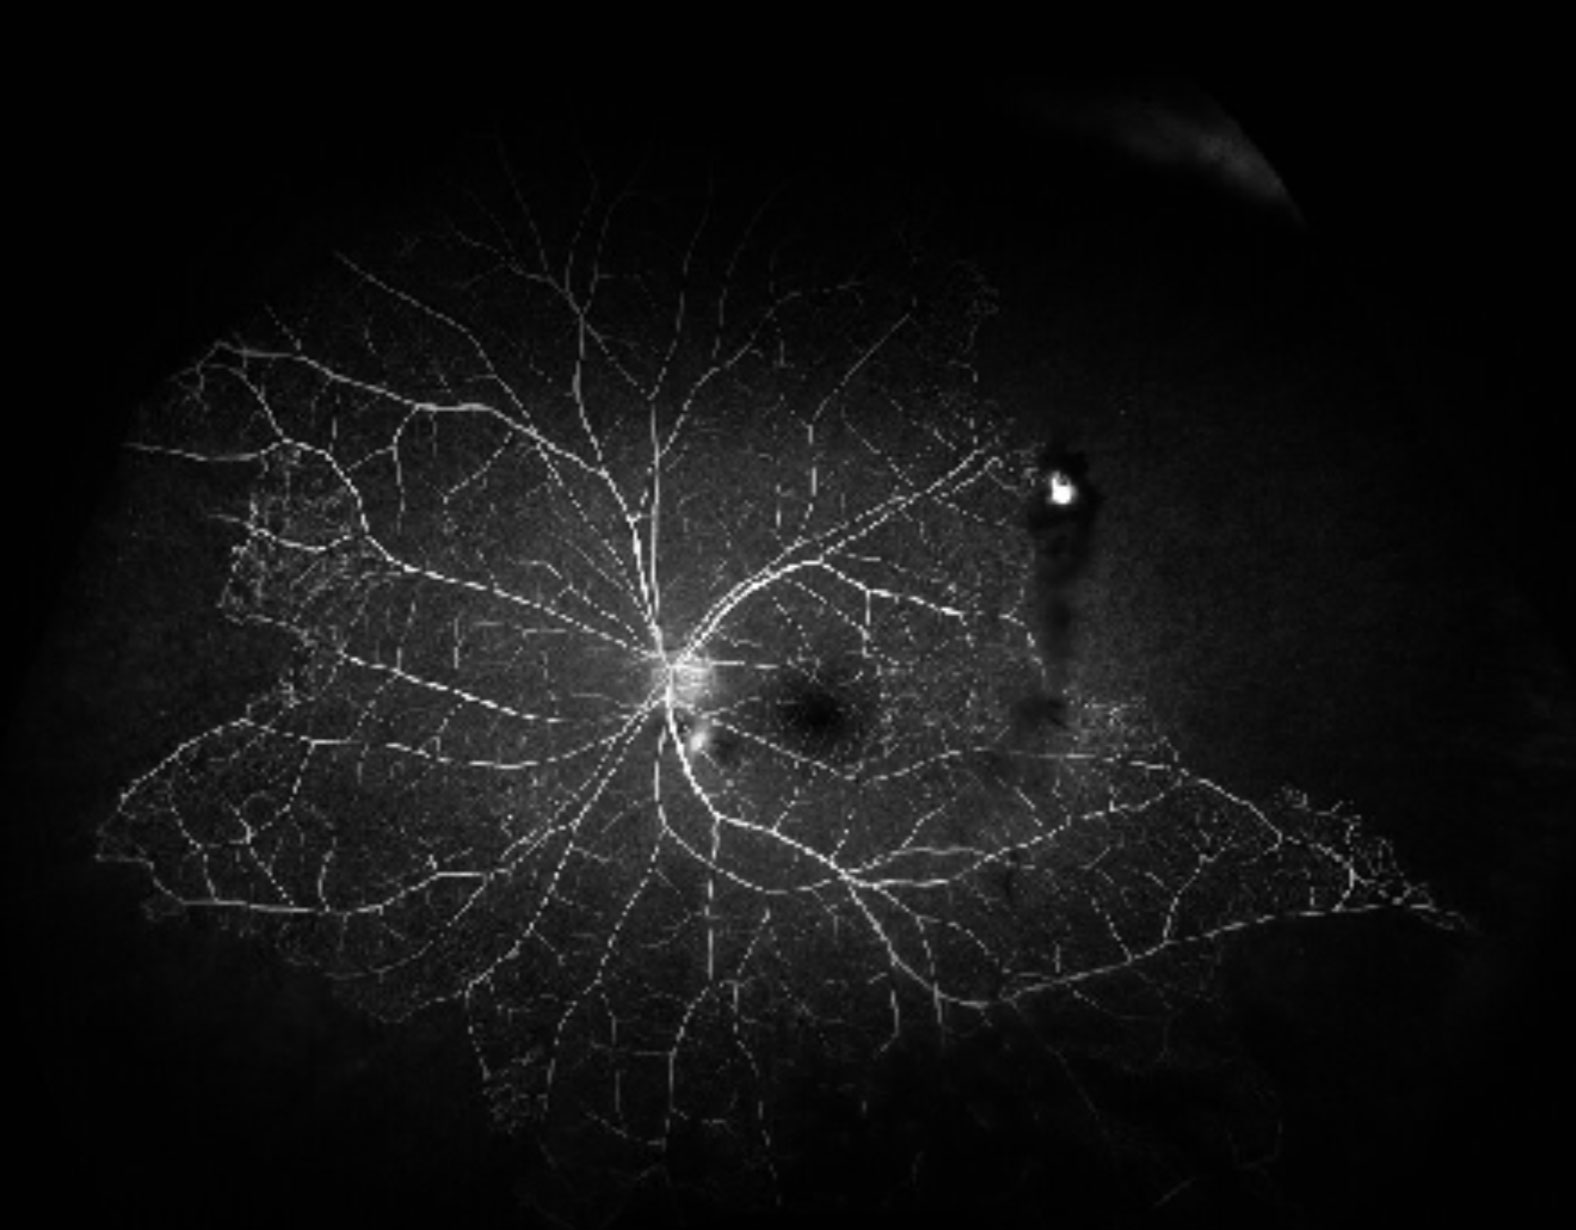 Optical coherence tomography shows multiple bilateral exudative retinal detachments, outer retinal cysts and thickened choroids.